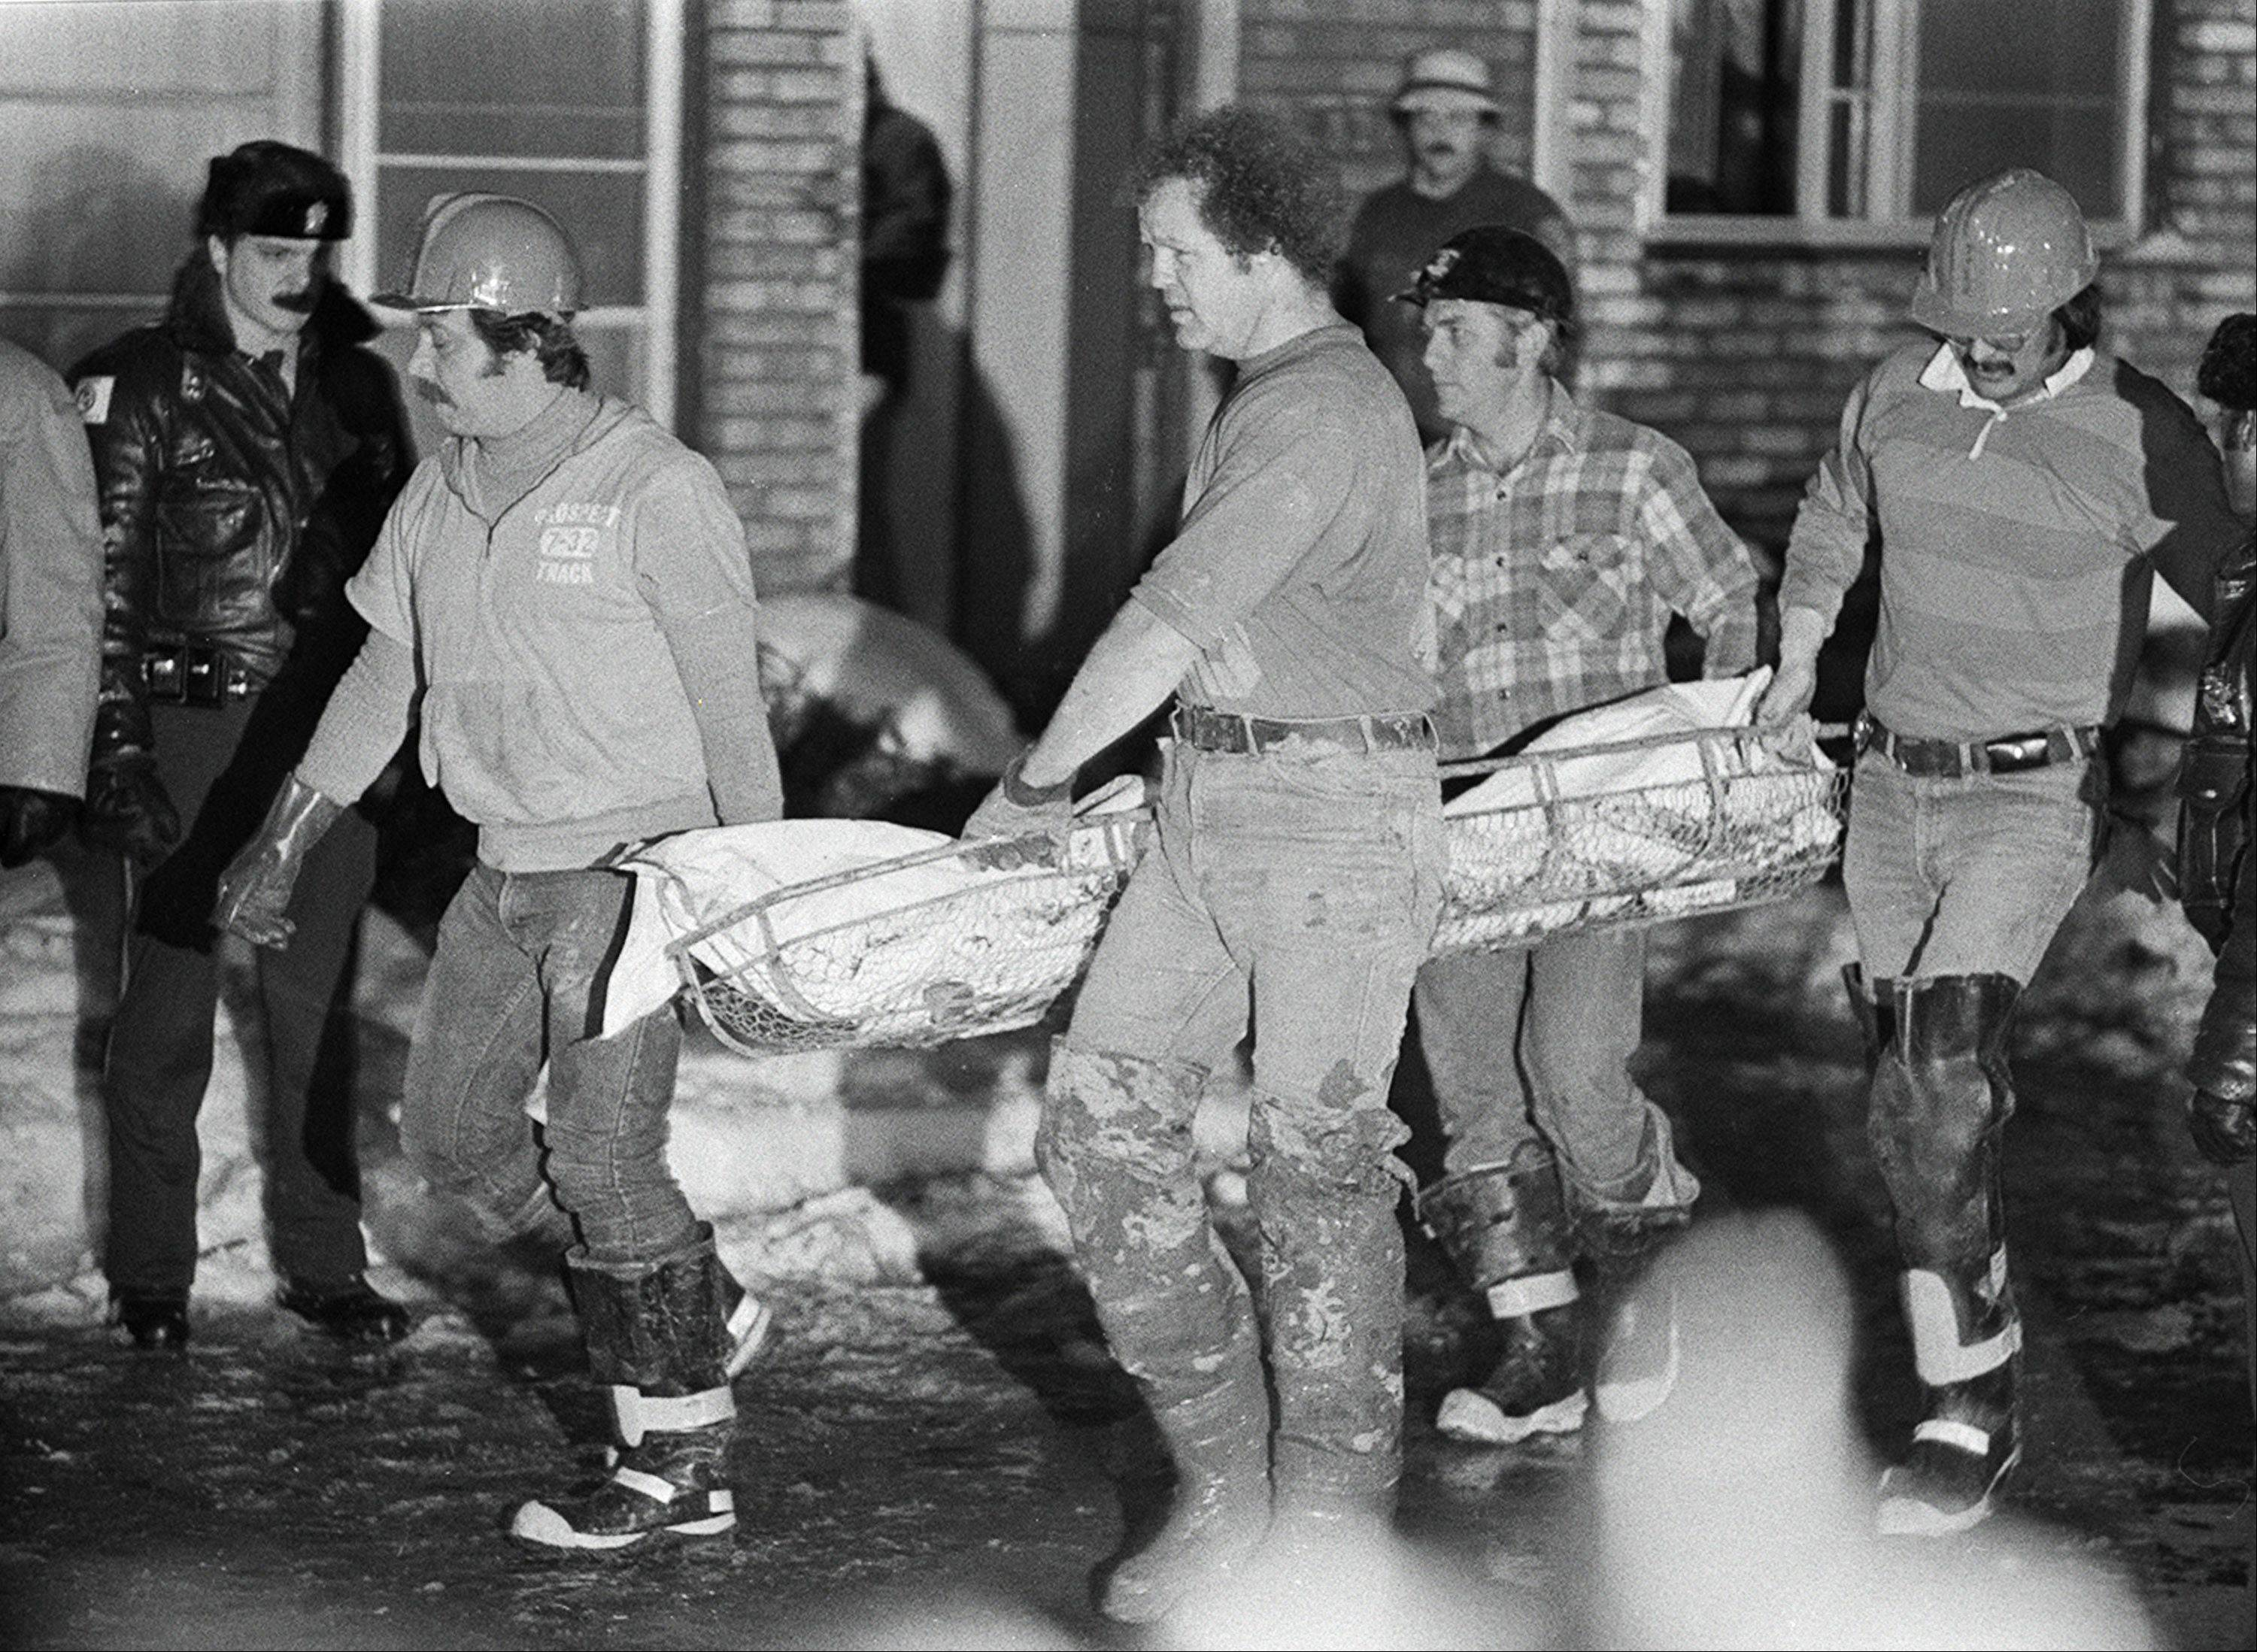 Police officers and firefighters remove one of the 28 bodies buried at the former Northwest suburban home of serial killer John Wayne Gacy in December 1978.